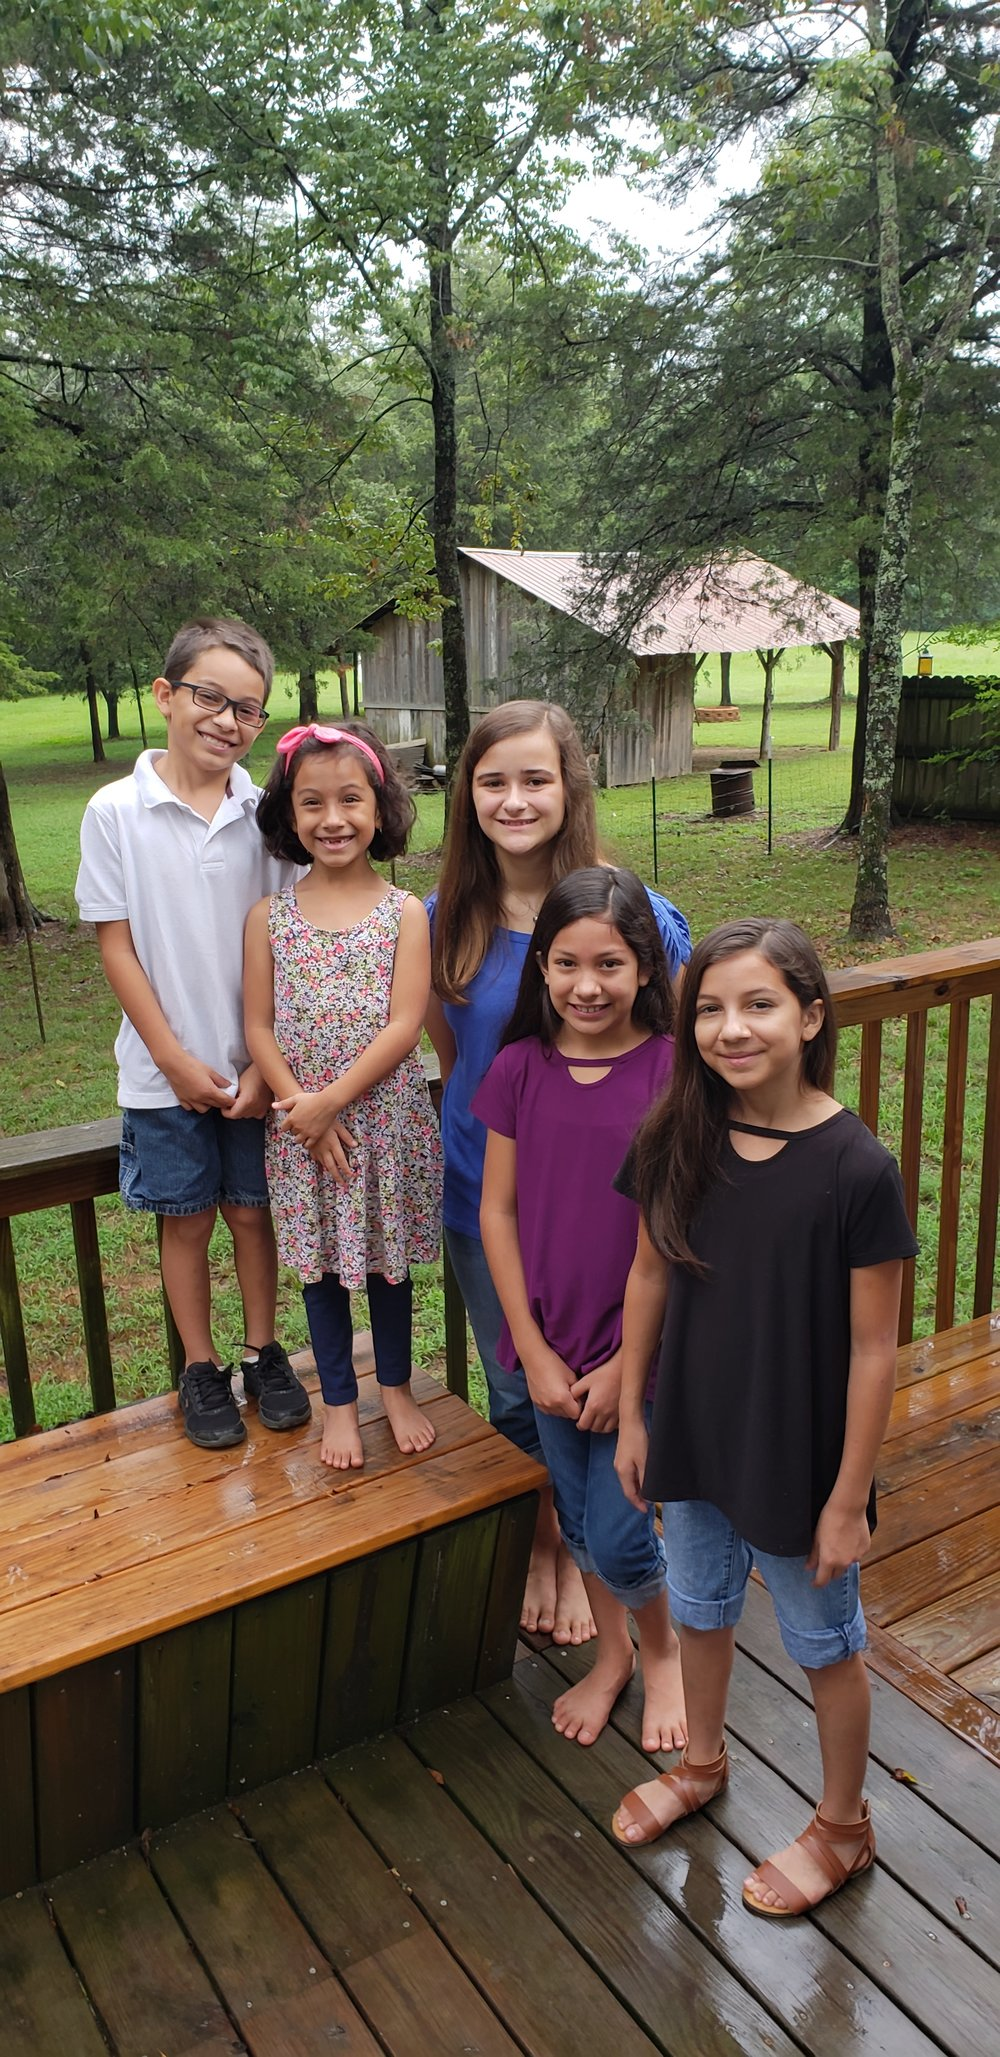 First day of school! - ...and Tanja's 20th year of homeschooling. Please pray for grace, guidance, strength and wisdom as we raise this family and teach the the way of the Lord.AND...would you please pray for our children? [in the picture from L to R, Bryan, Elly, Jillian, Josie and Jalynn] Please pray for them as they learn to read, write, add, subtract, etc. Please pray that they grow to know their God better each day. Pray for protection from the strategies of the enemy to derail and destroy the perfect plan of the Lord for their lives.ALSO, please pray for our three older children: SHELBY, who is in grad school at Harding and a grad assistant their while living with and helping care for my father and mother (who has Alzheimers); BETHANY, who is living with us while finishing out her midwifery requirements and looking into potential future work in a persecuted country in Central Asia; ROBBIE, as he works and finishes his last semester at the community college in Kansas City (and also anxiously awaiting a visa for his bride-to-be who is in Albania).